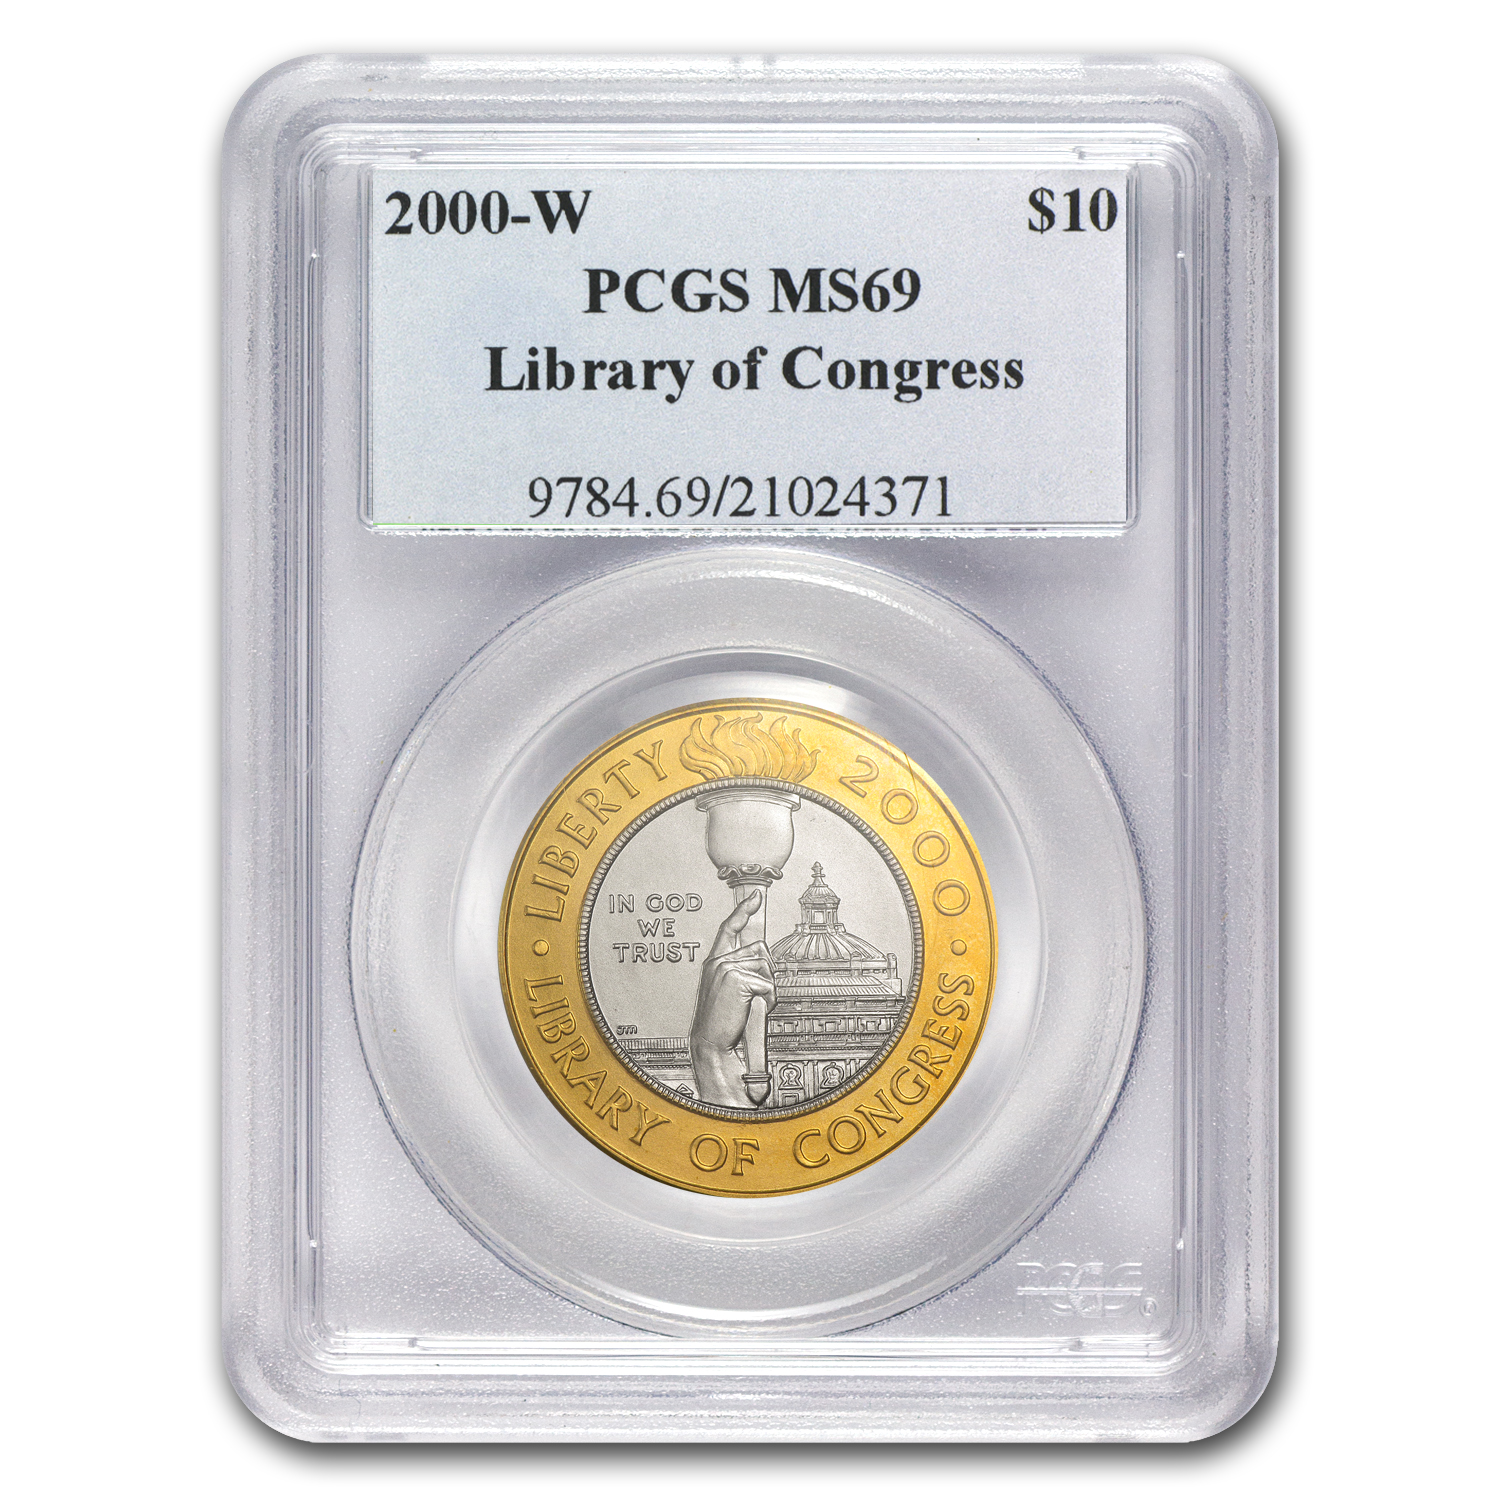 2000-W $10 Gold/Platinum Commem Library of Congress MS-69 PCGS